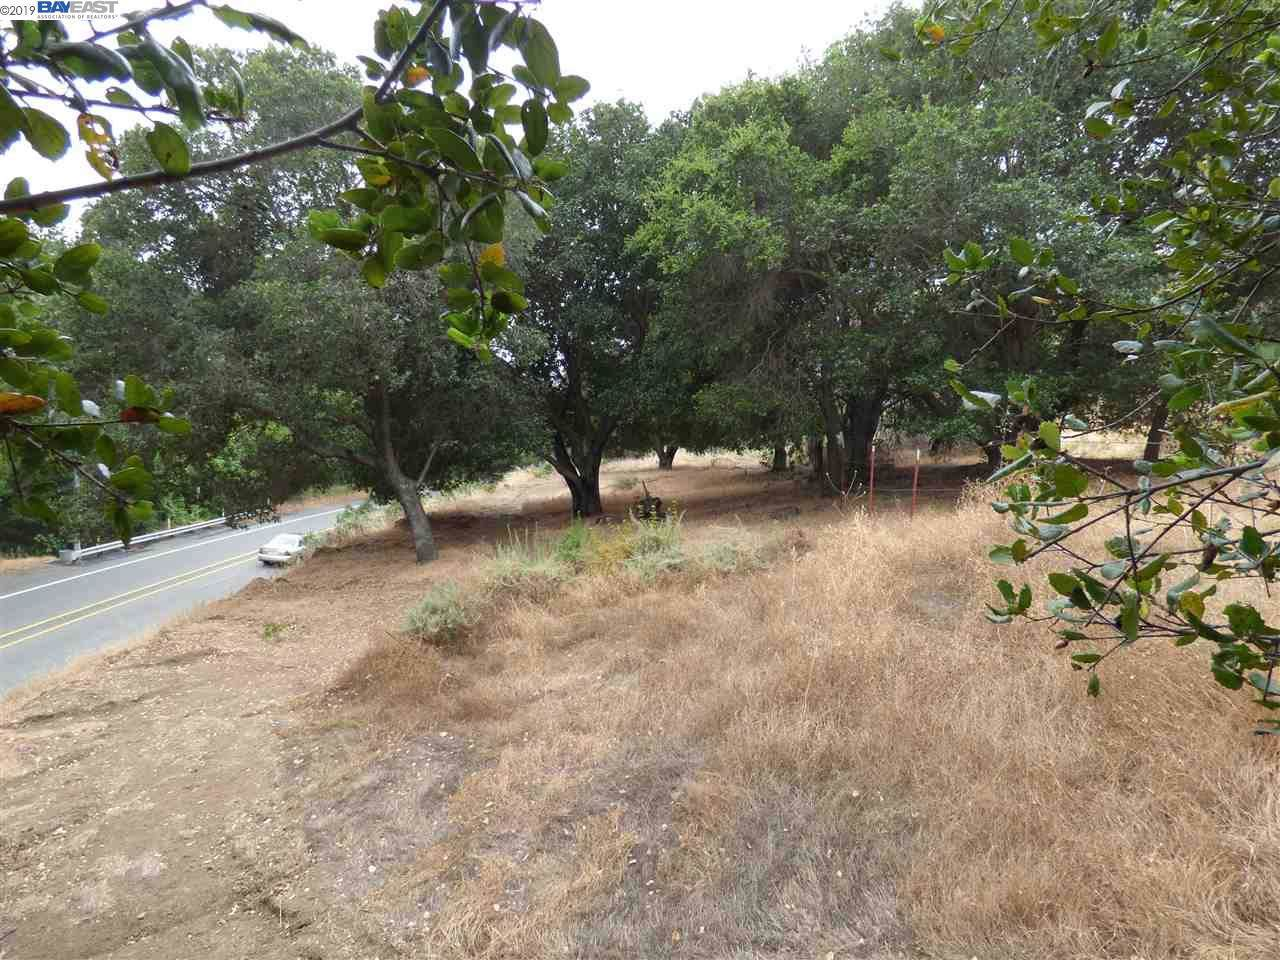 1298 Niles Canyon Rd - Photo 1